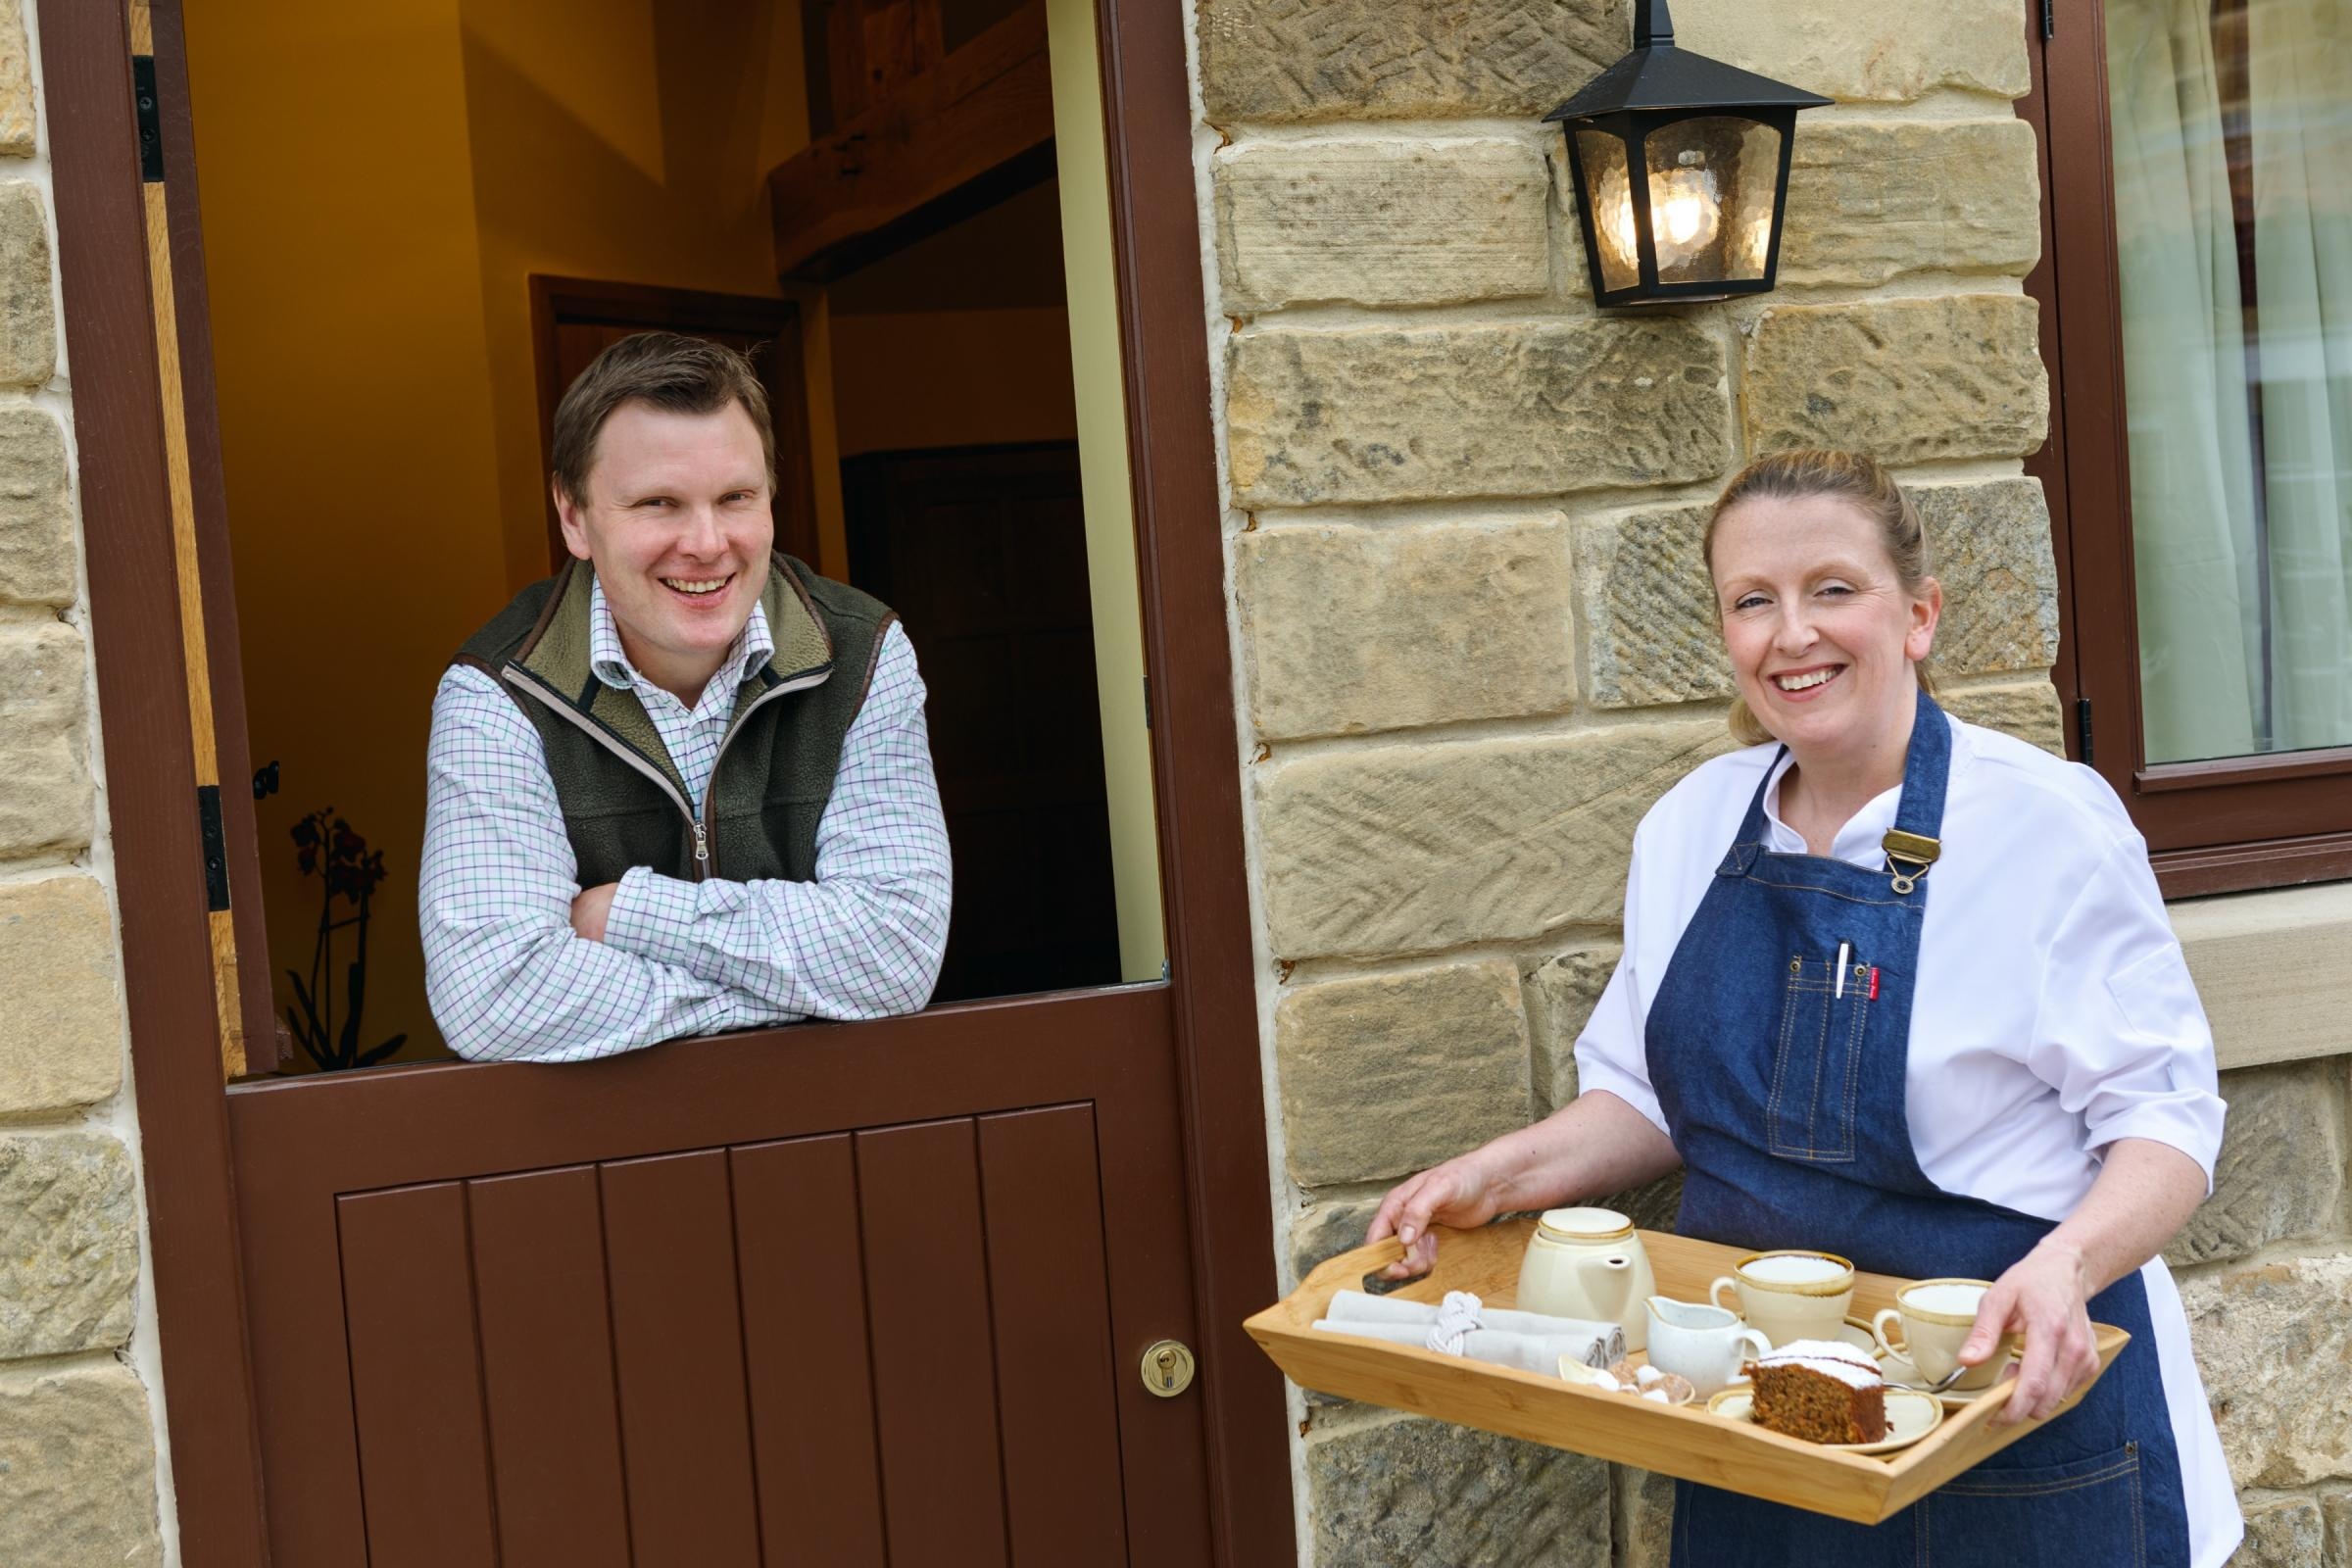 Paul and Amy Callin, of Woodlands Farm, Thimbleby, Northallerton, are in the finals of Tastiest Breakfast in the 2018 Eviivo Awards